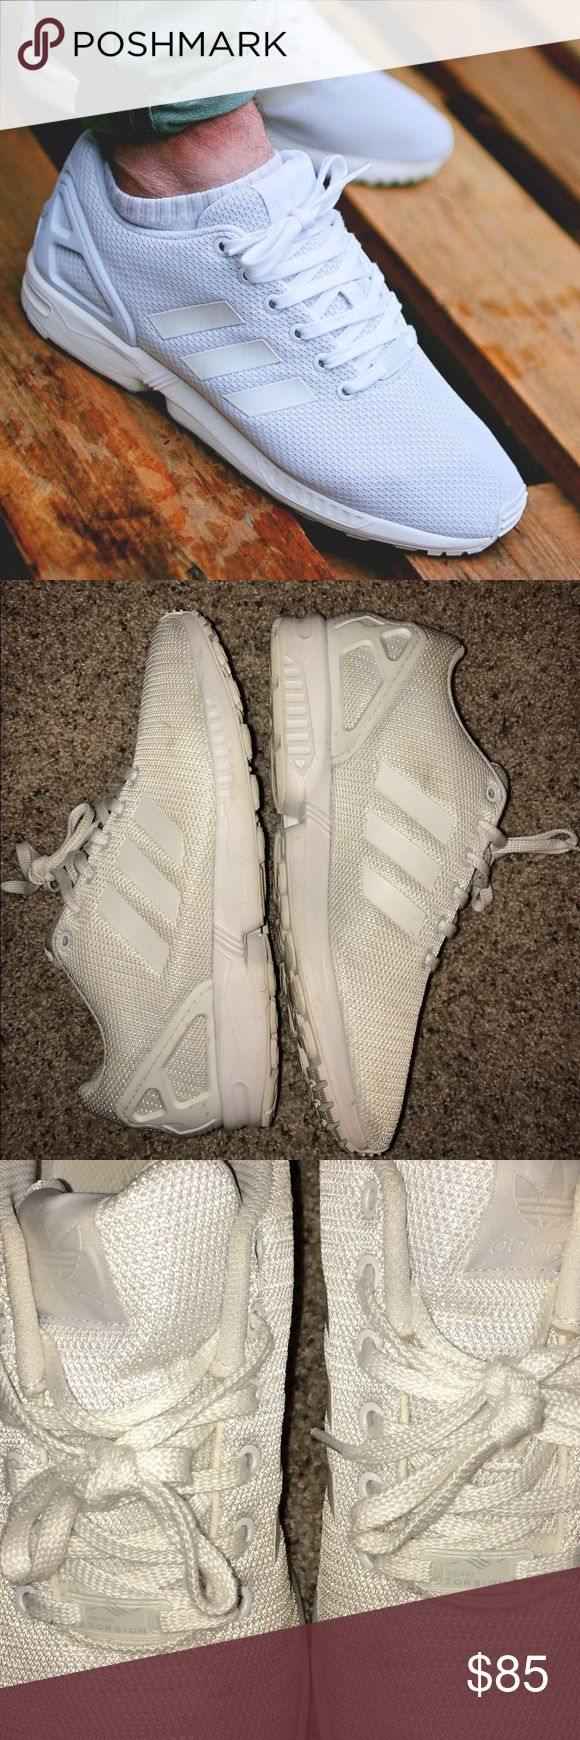 Adidas ZX Flux Men's size 11, white, no flaws other than a few small marks on the mesh. Could be cleaned. Worn 2x. Adidas Shoes Sneakers